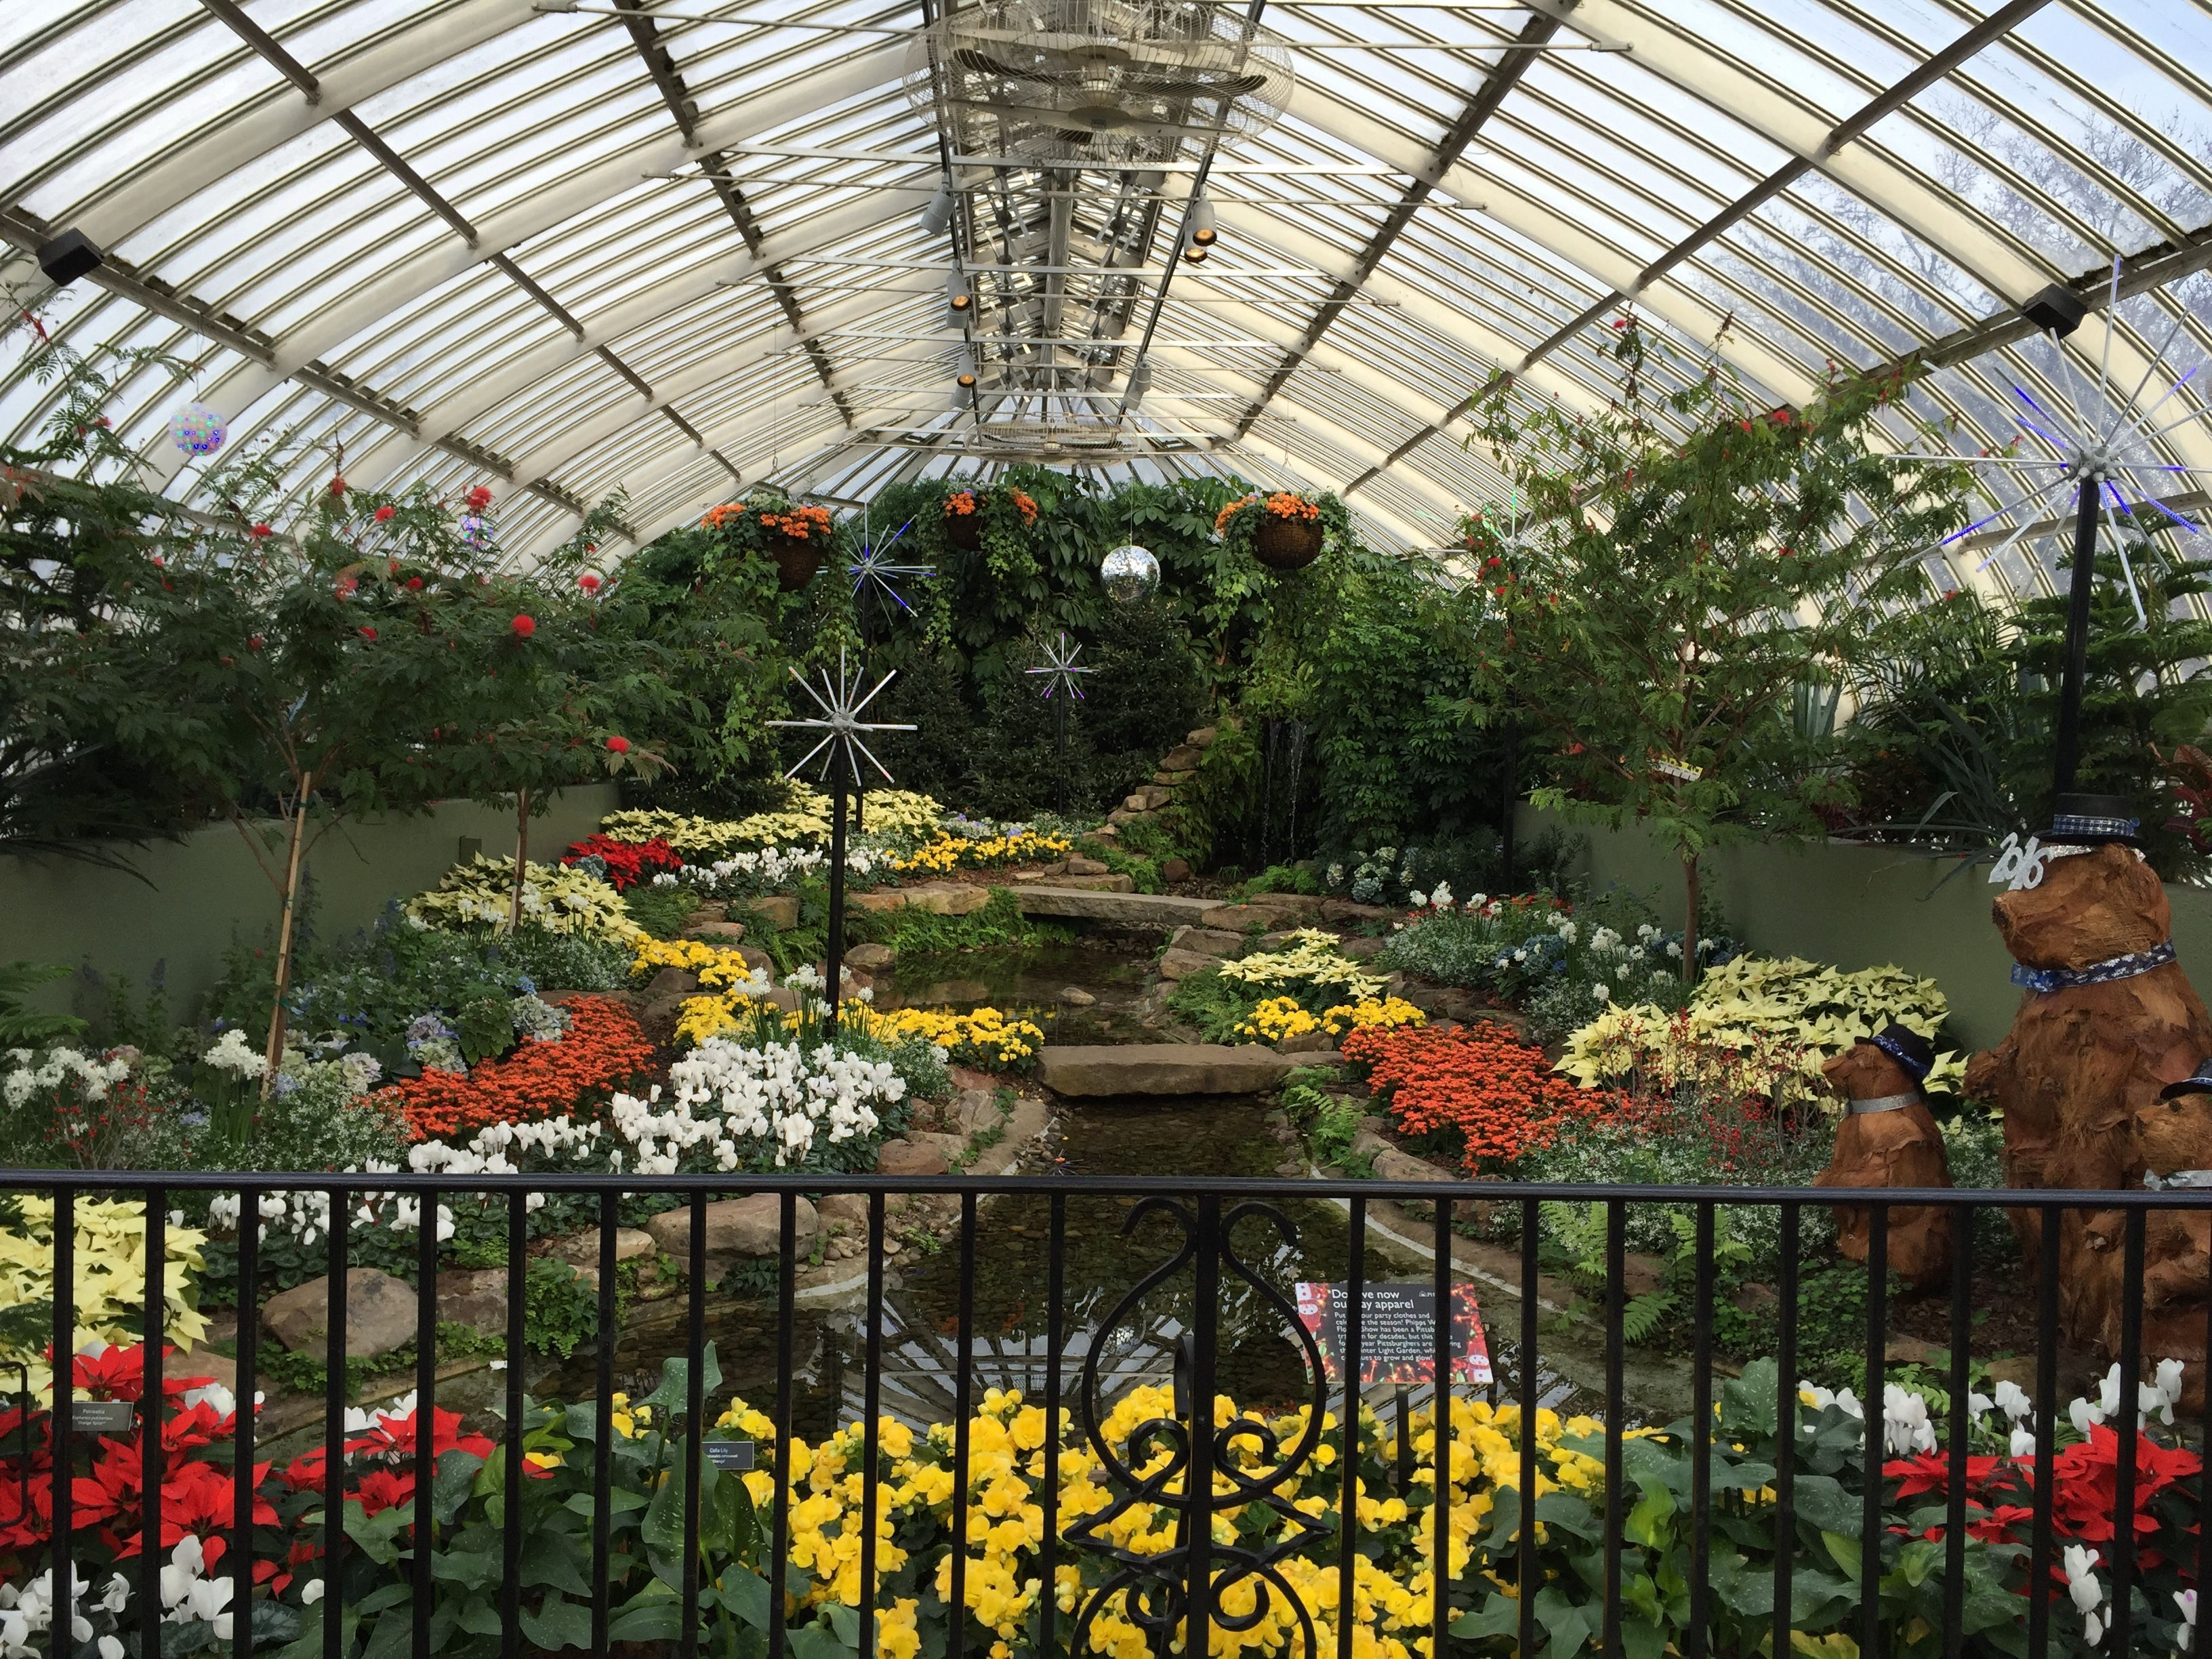 9 Things You Should Know Before You Visit Phipps Conservatory And Botanical Garden In Pittsburgh Botanical Gardens Phipps Conservatory Garden Inspiration